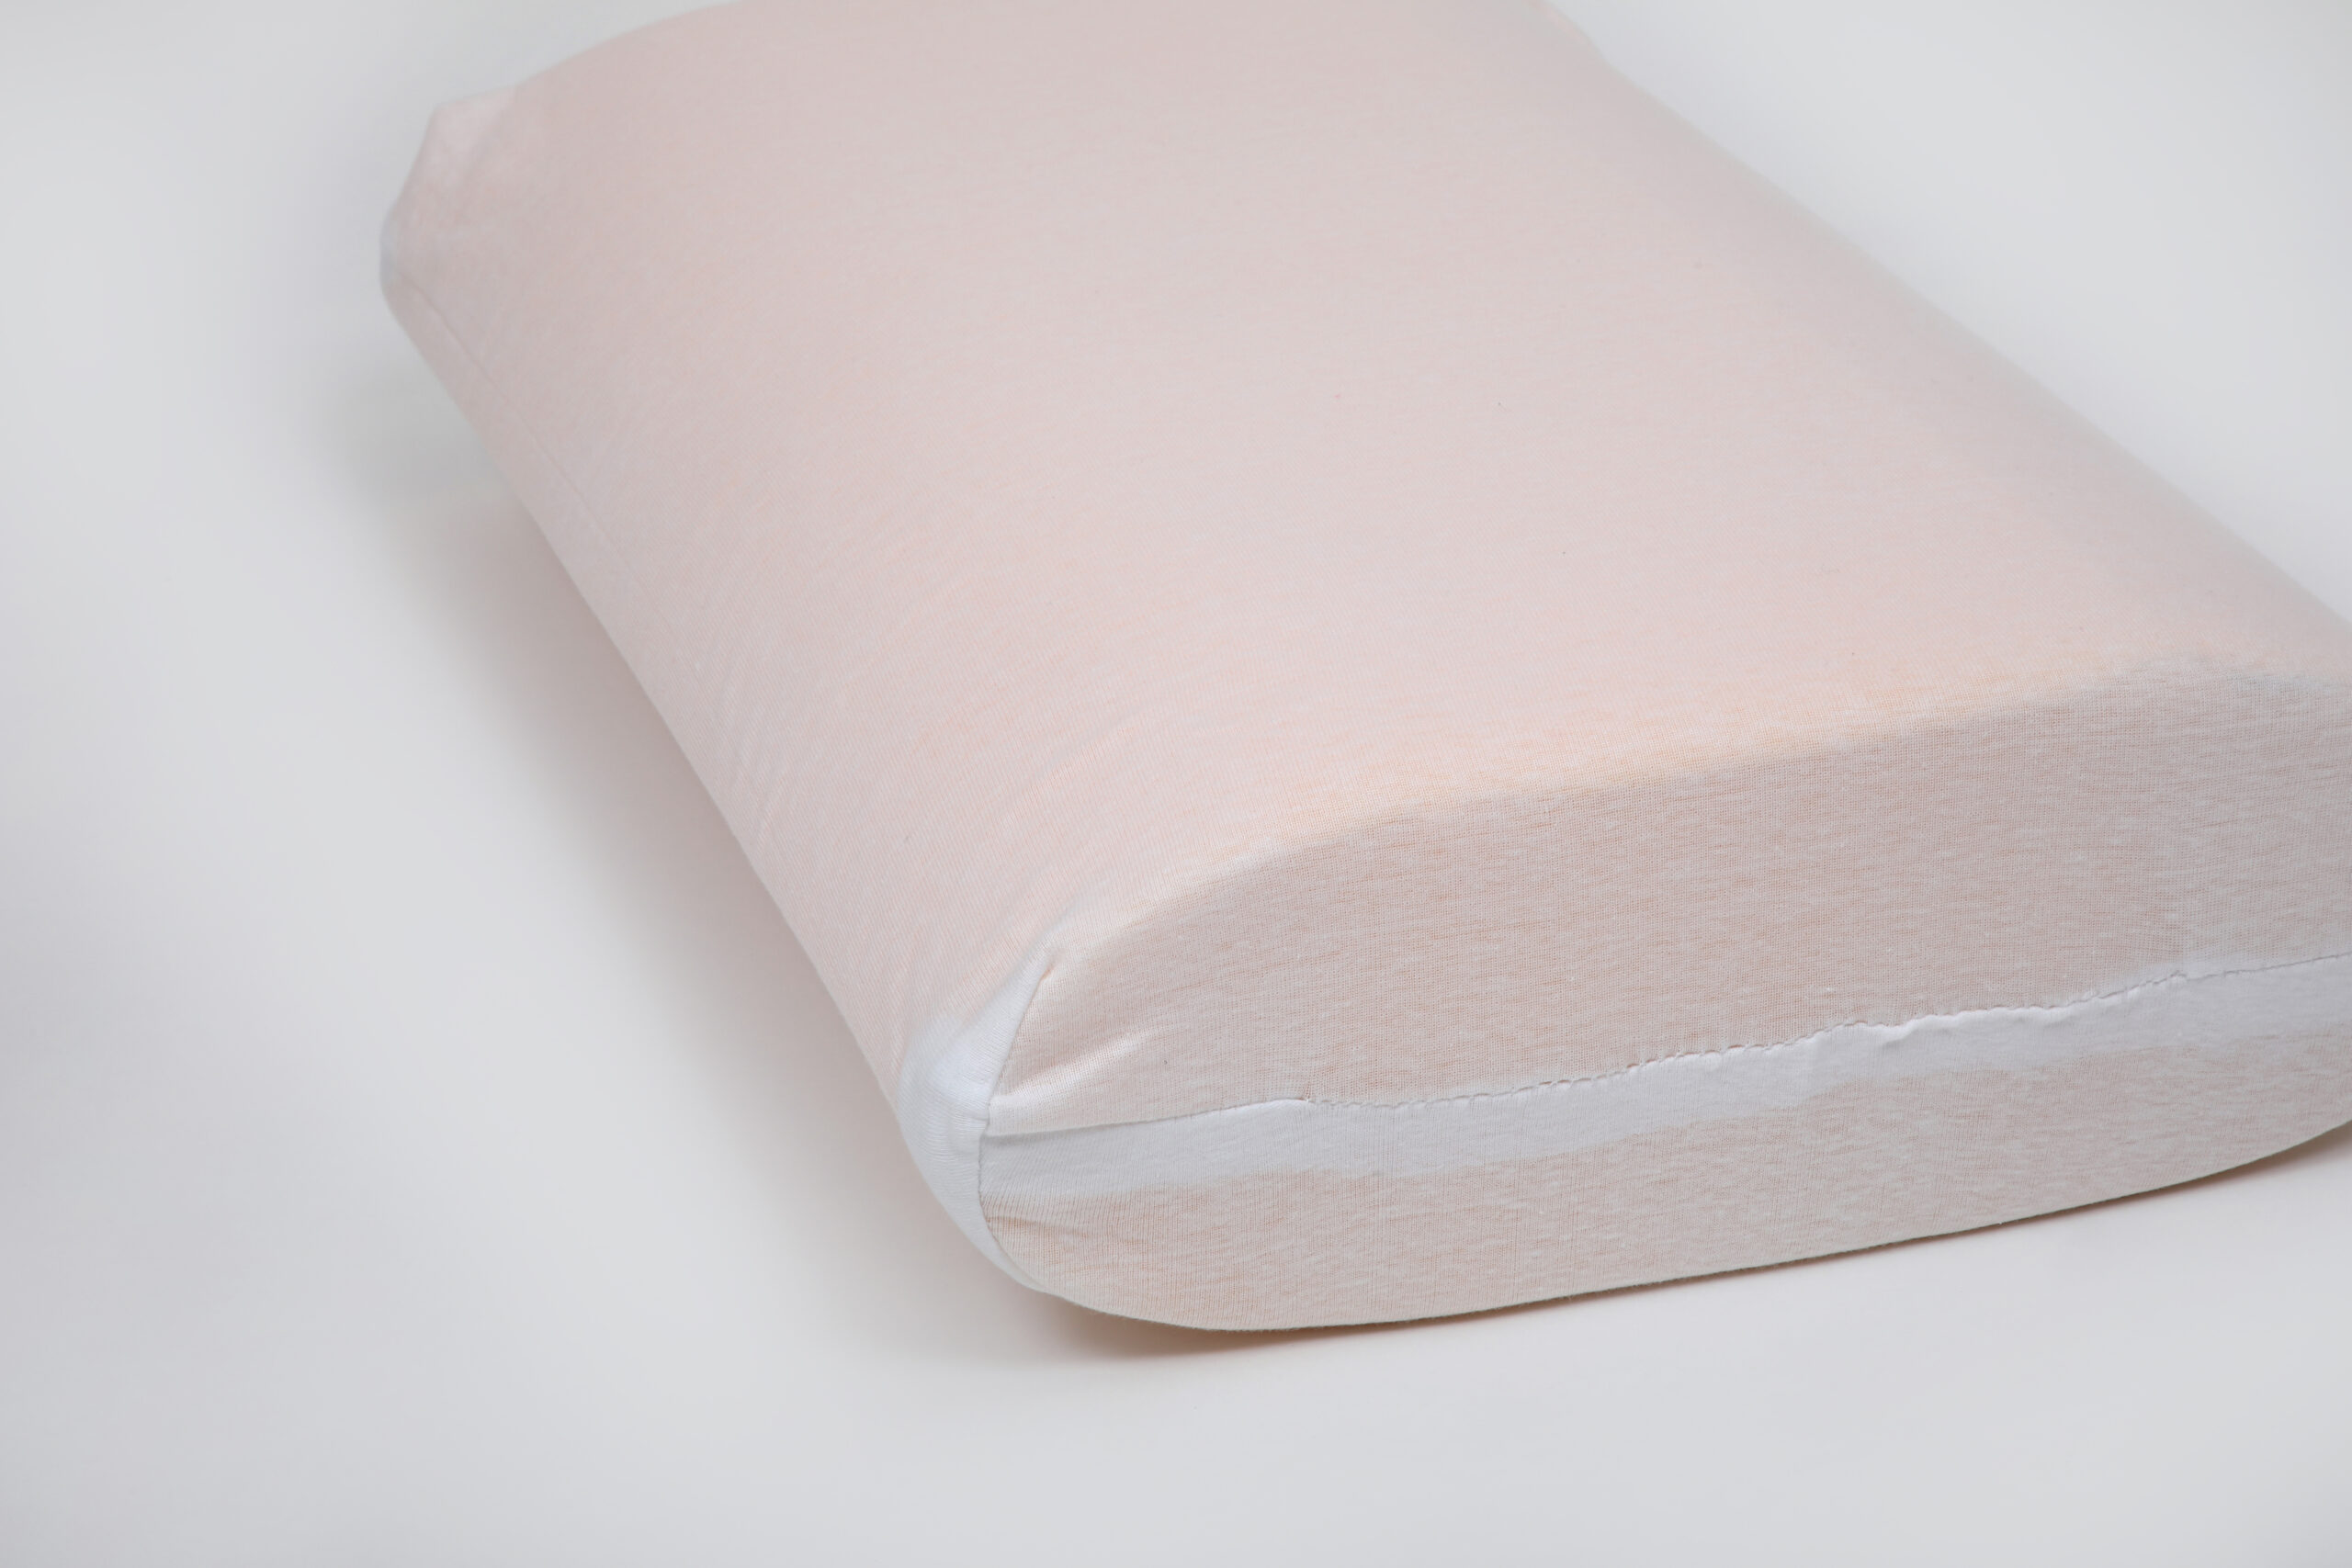 Oval memory foam pillow by NAM House of sleep (picture 3)